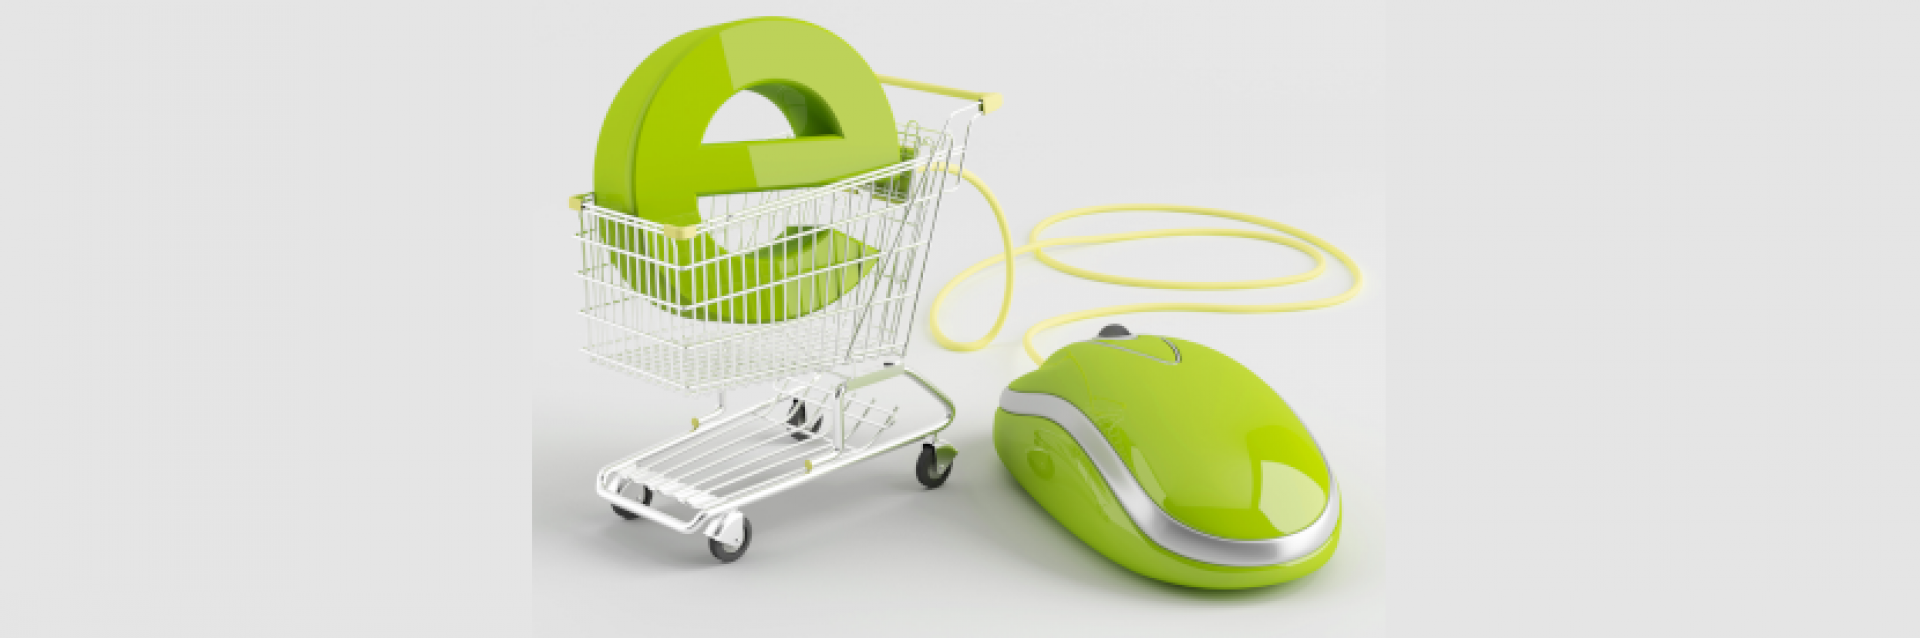 African countries cautioned to wake up on sleeping ecommerce